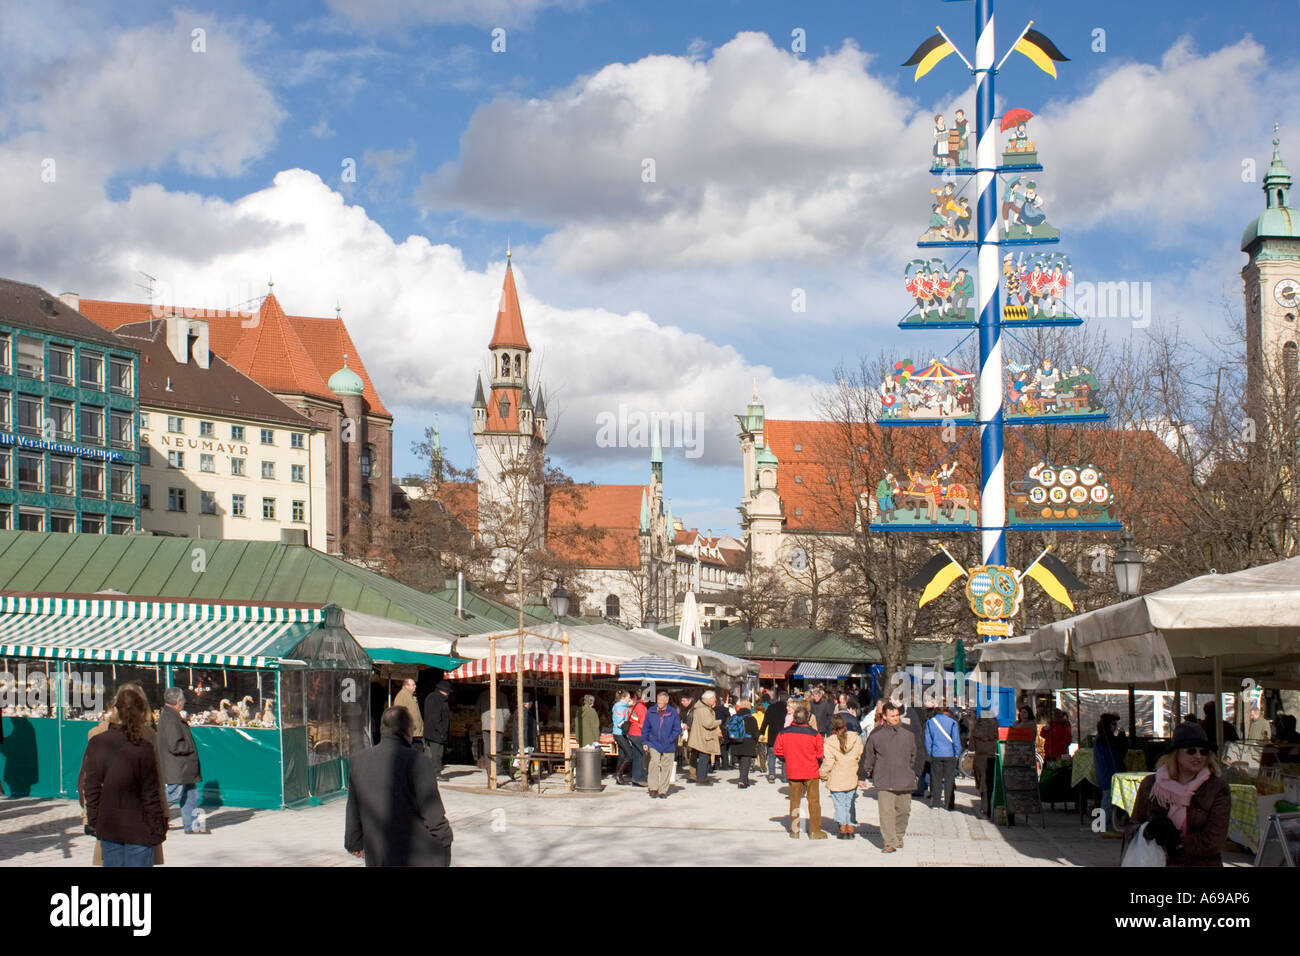 viktualienmarkt winter munich stockfotos viktualienmarkt winter munich bilder alamy. Black Bedroom Furniture Sets. Home Design Ideas